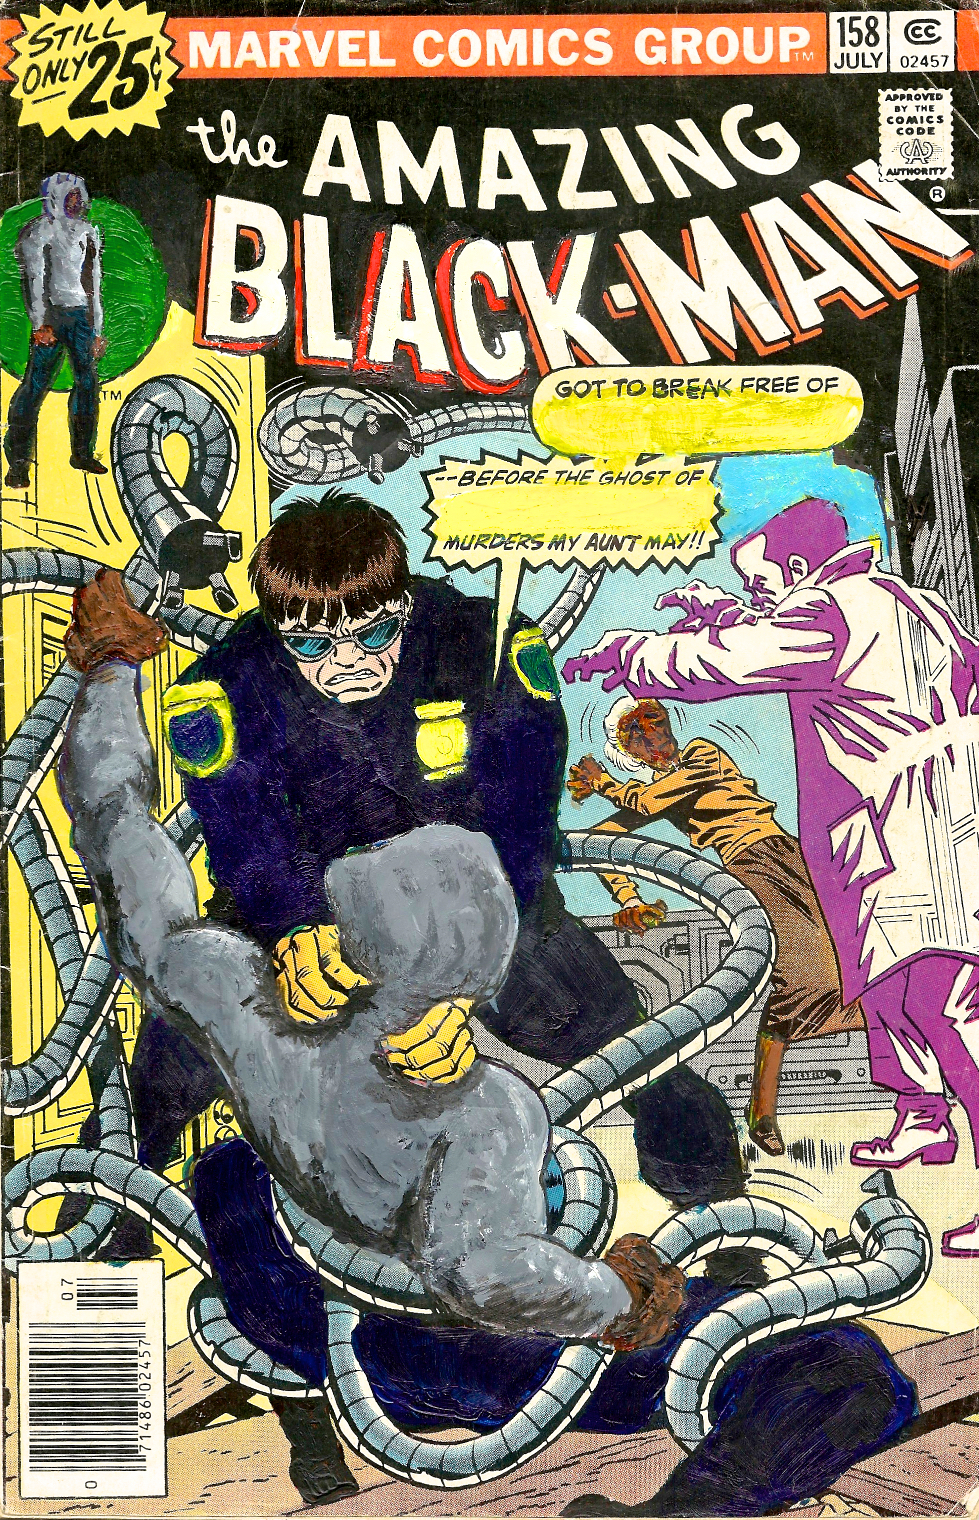 Kumasi J. Barnett  The Amazing Black-Man #158 Got to break free of This Cop—  2015 Acrylic, marker, pen and oil marker on comic book 9 3/4h x 6 1/4w inches KB-016